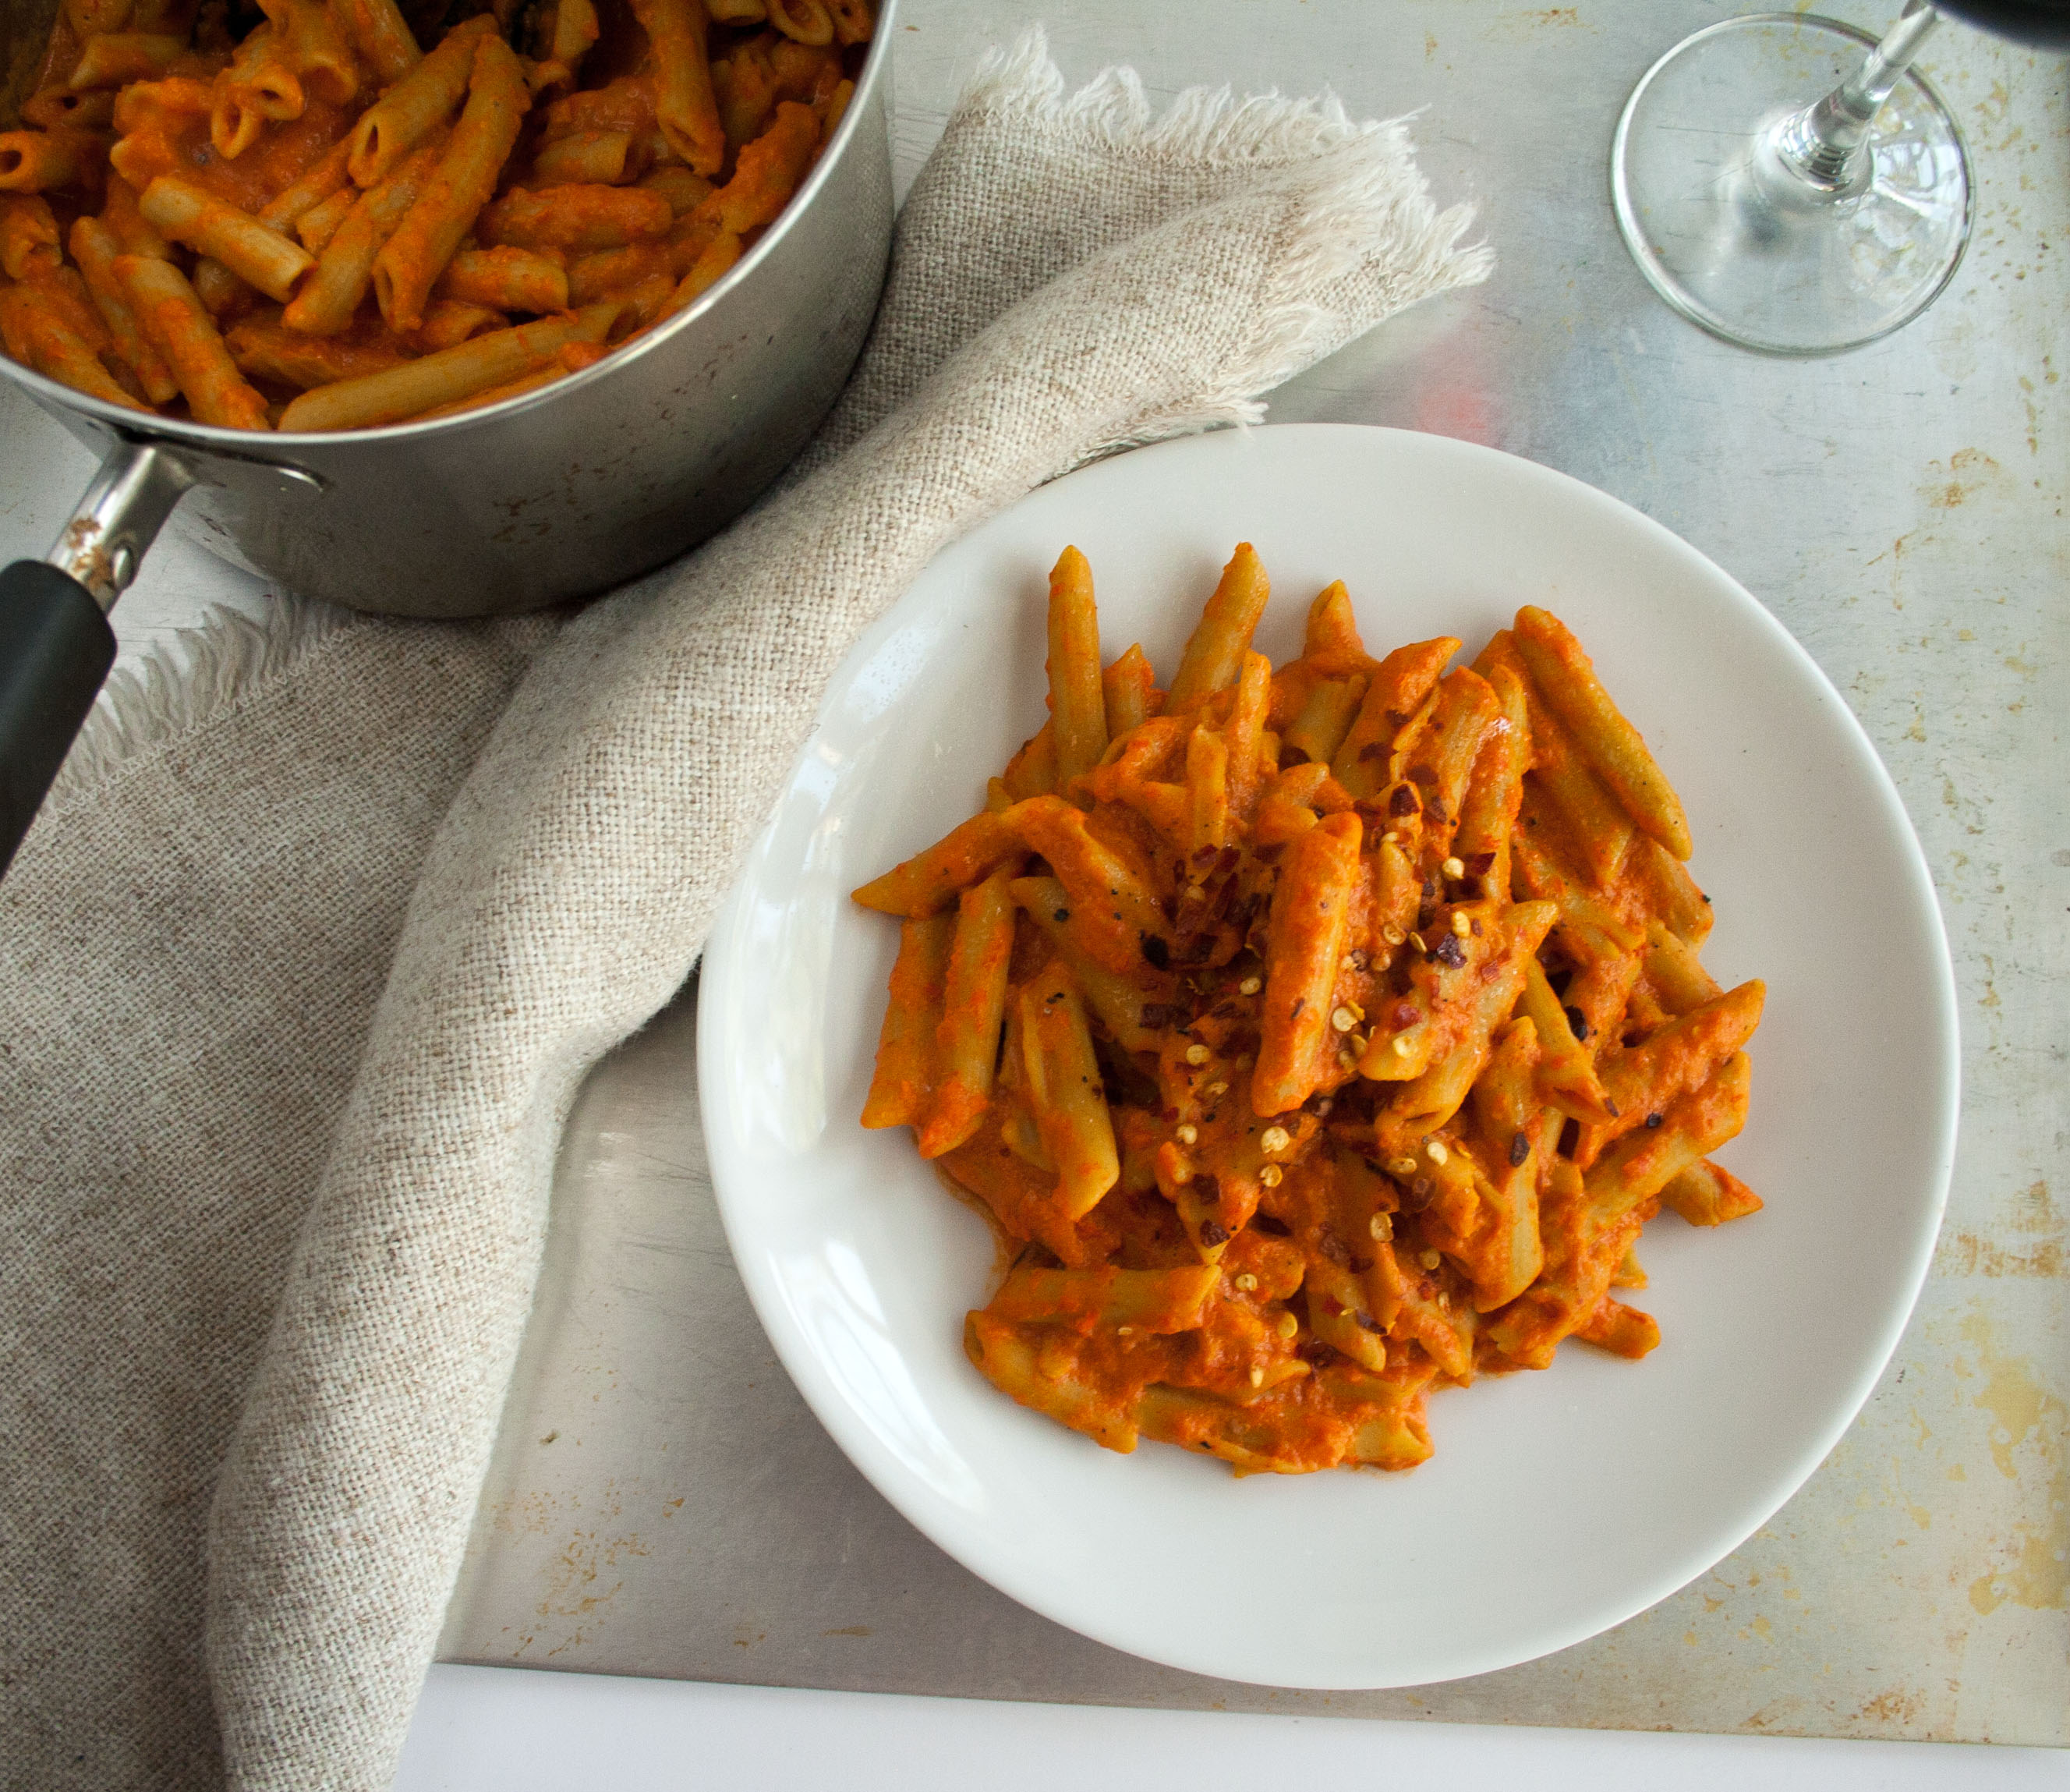 Roasted Red Pepper Pasta birds eye view.